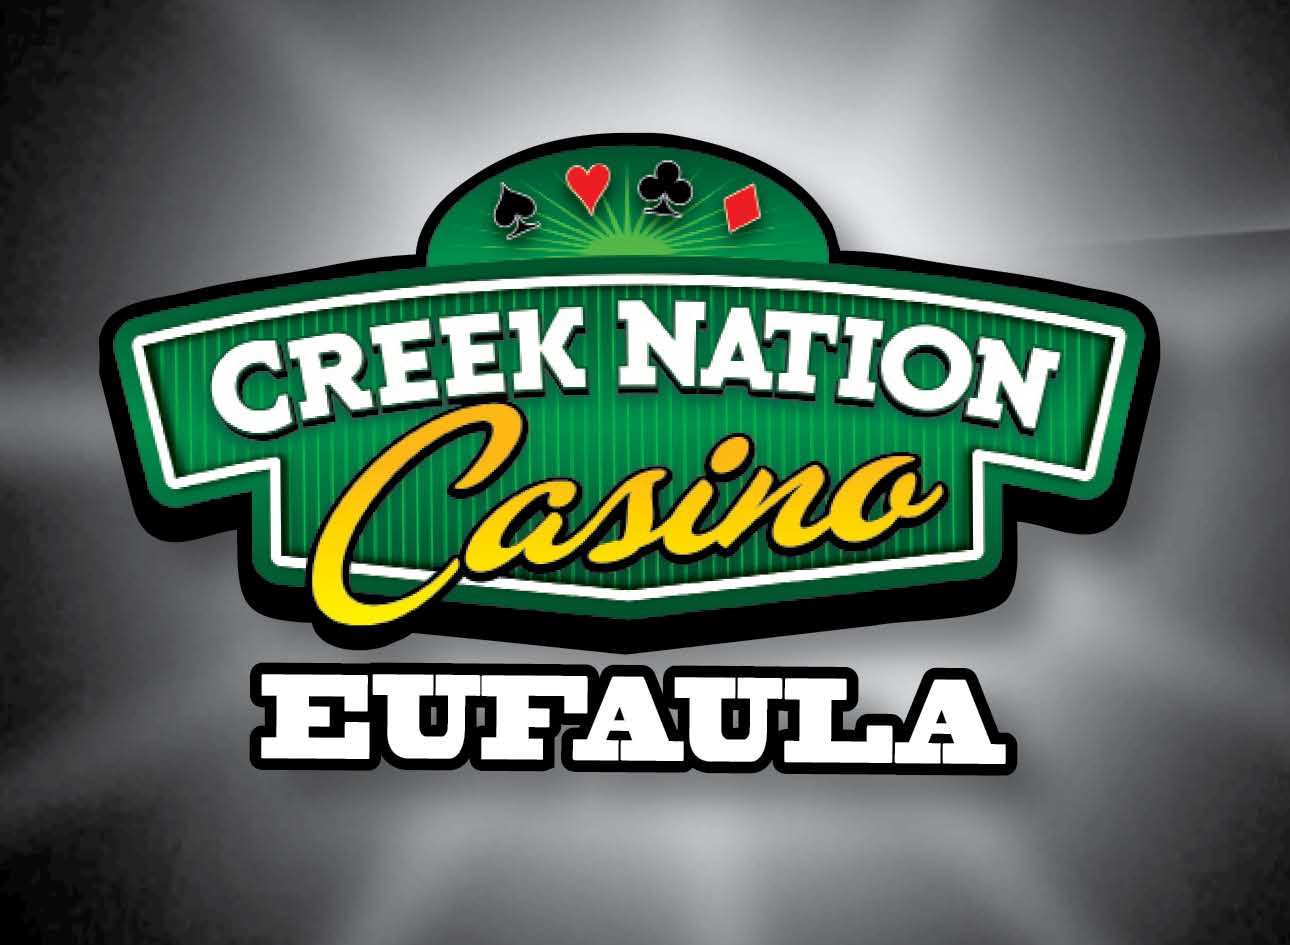 Creek Nation Casino of Eufaula